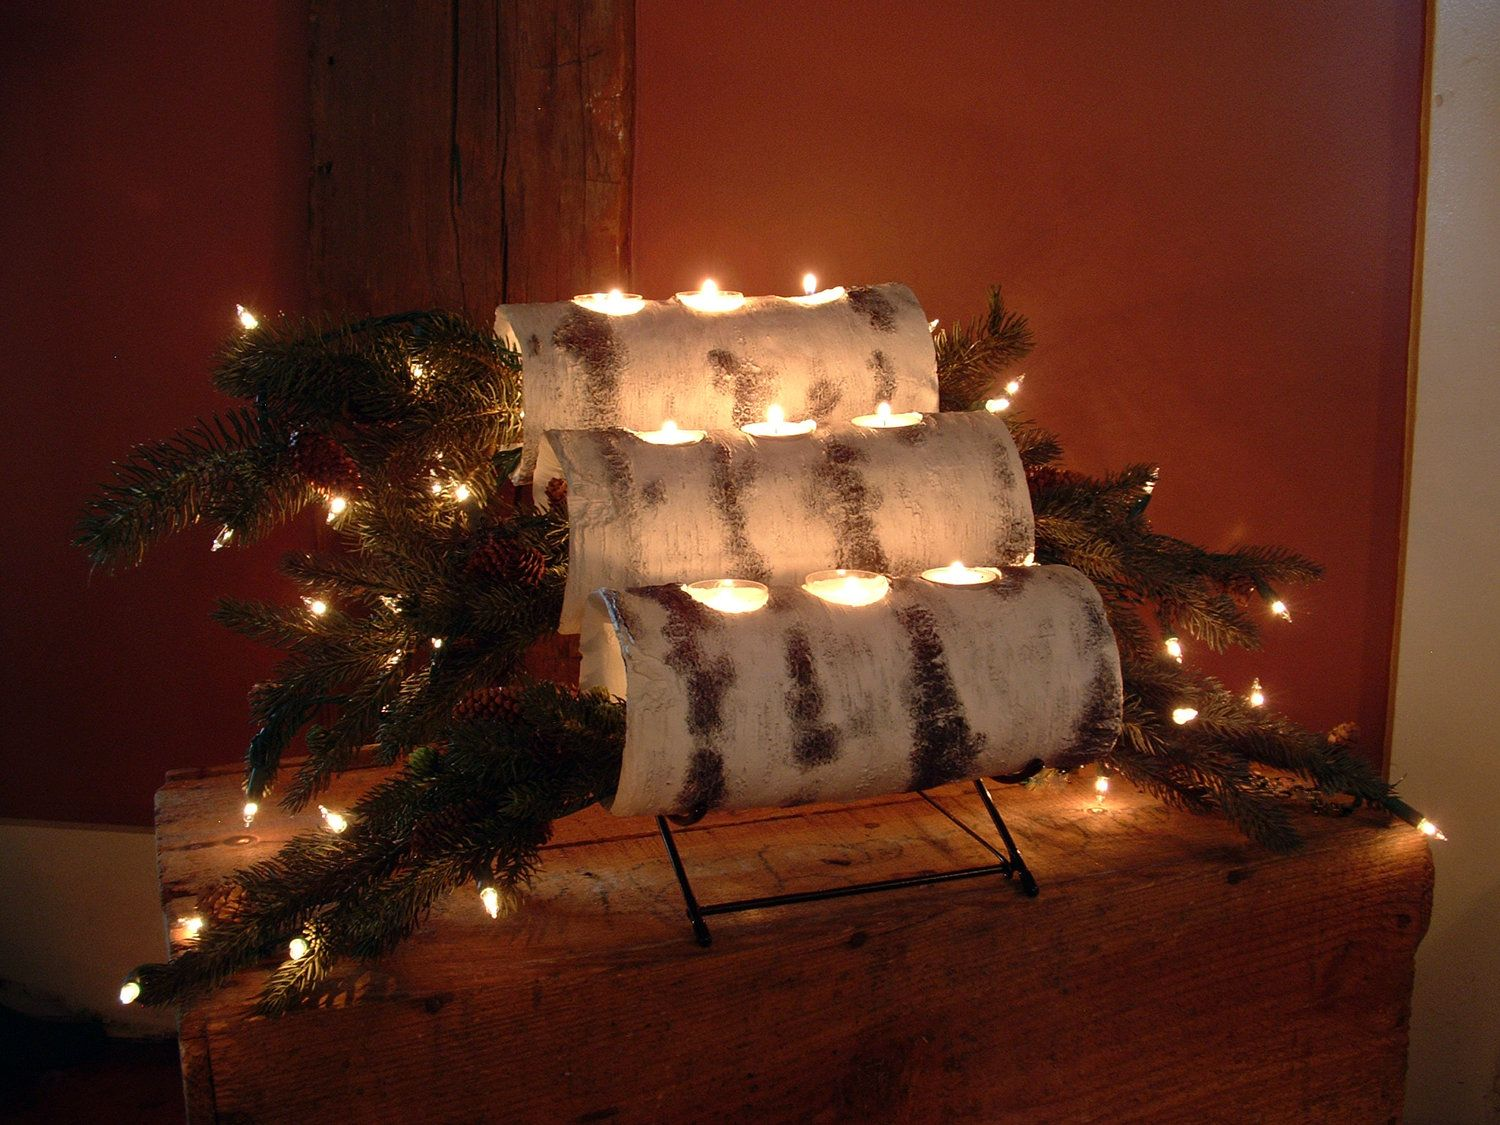 How to make a christmas yule log decoration - Three Tier Birch Yule Log Cradle With Birch Logs And Prelit Evergreen Boughs Yule Logchristmas Diyholiday